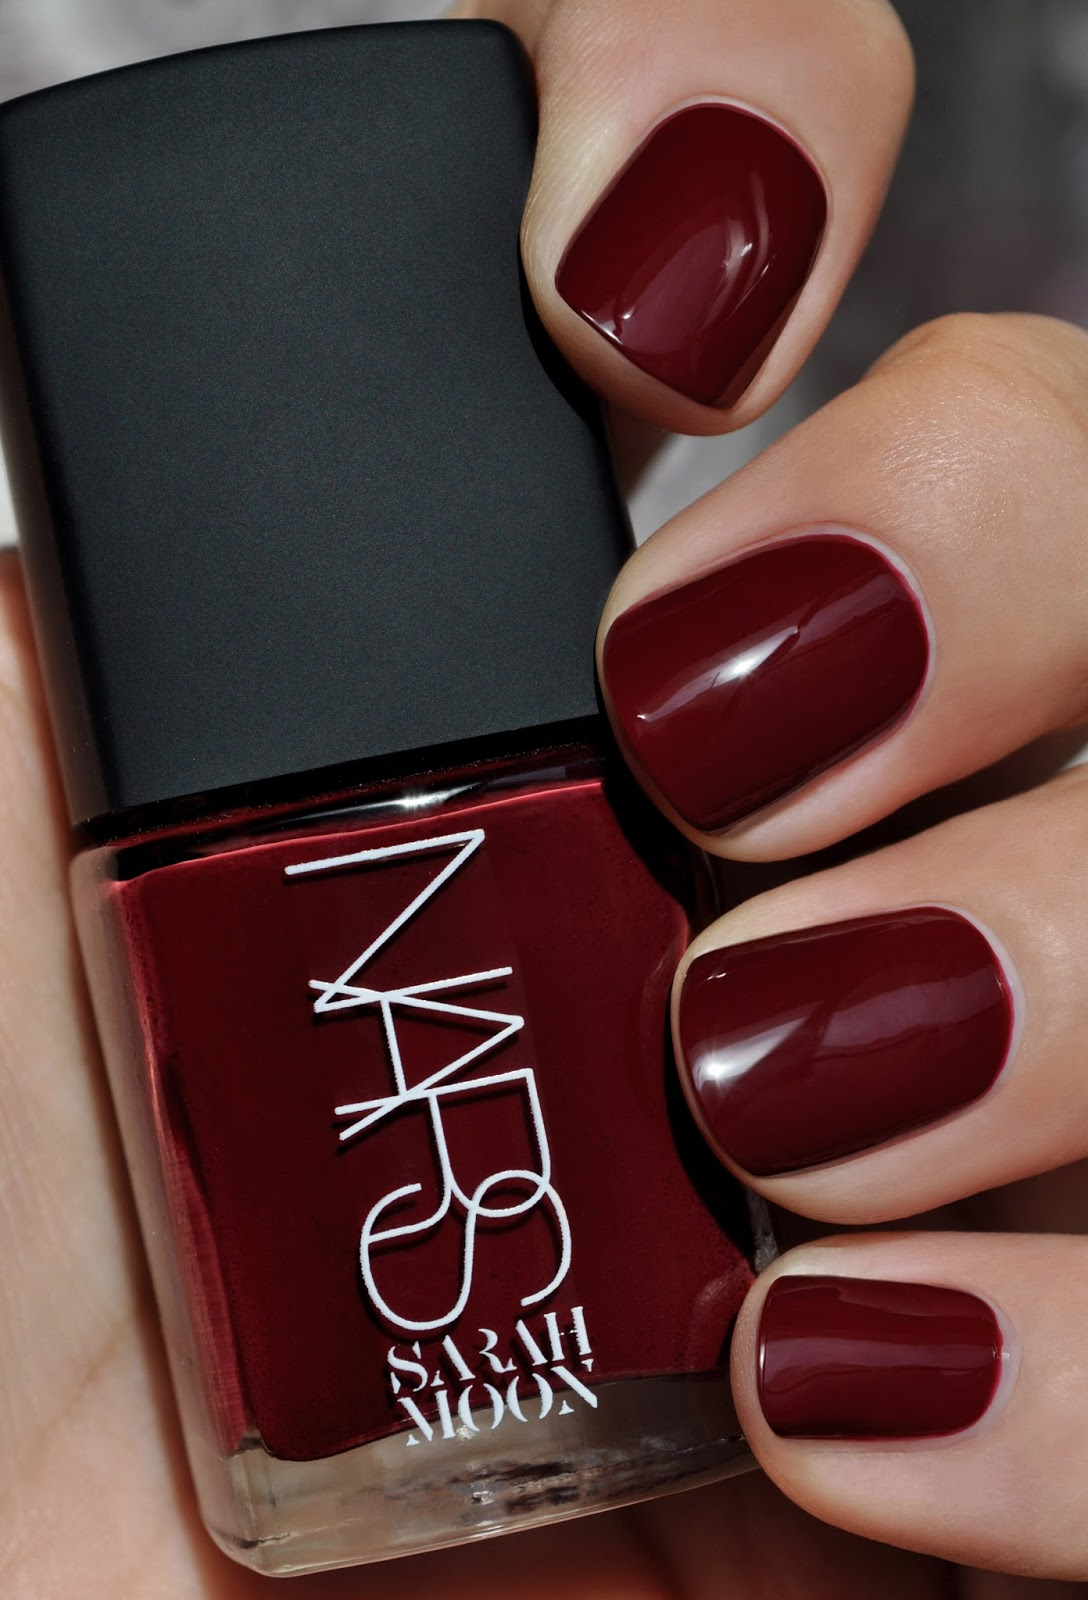 So Lonely in Gorgeous: The Woman In Black...NARS Sarah Moon Nail Polish